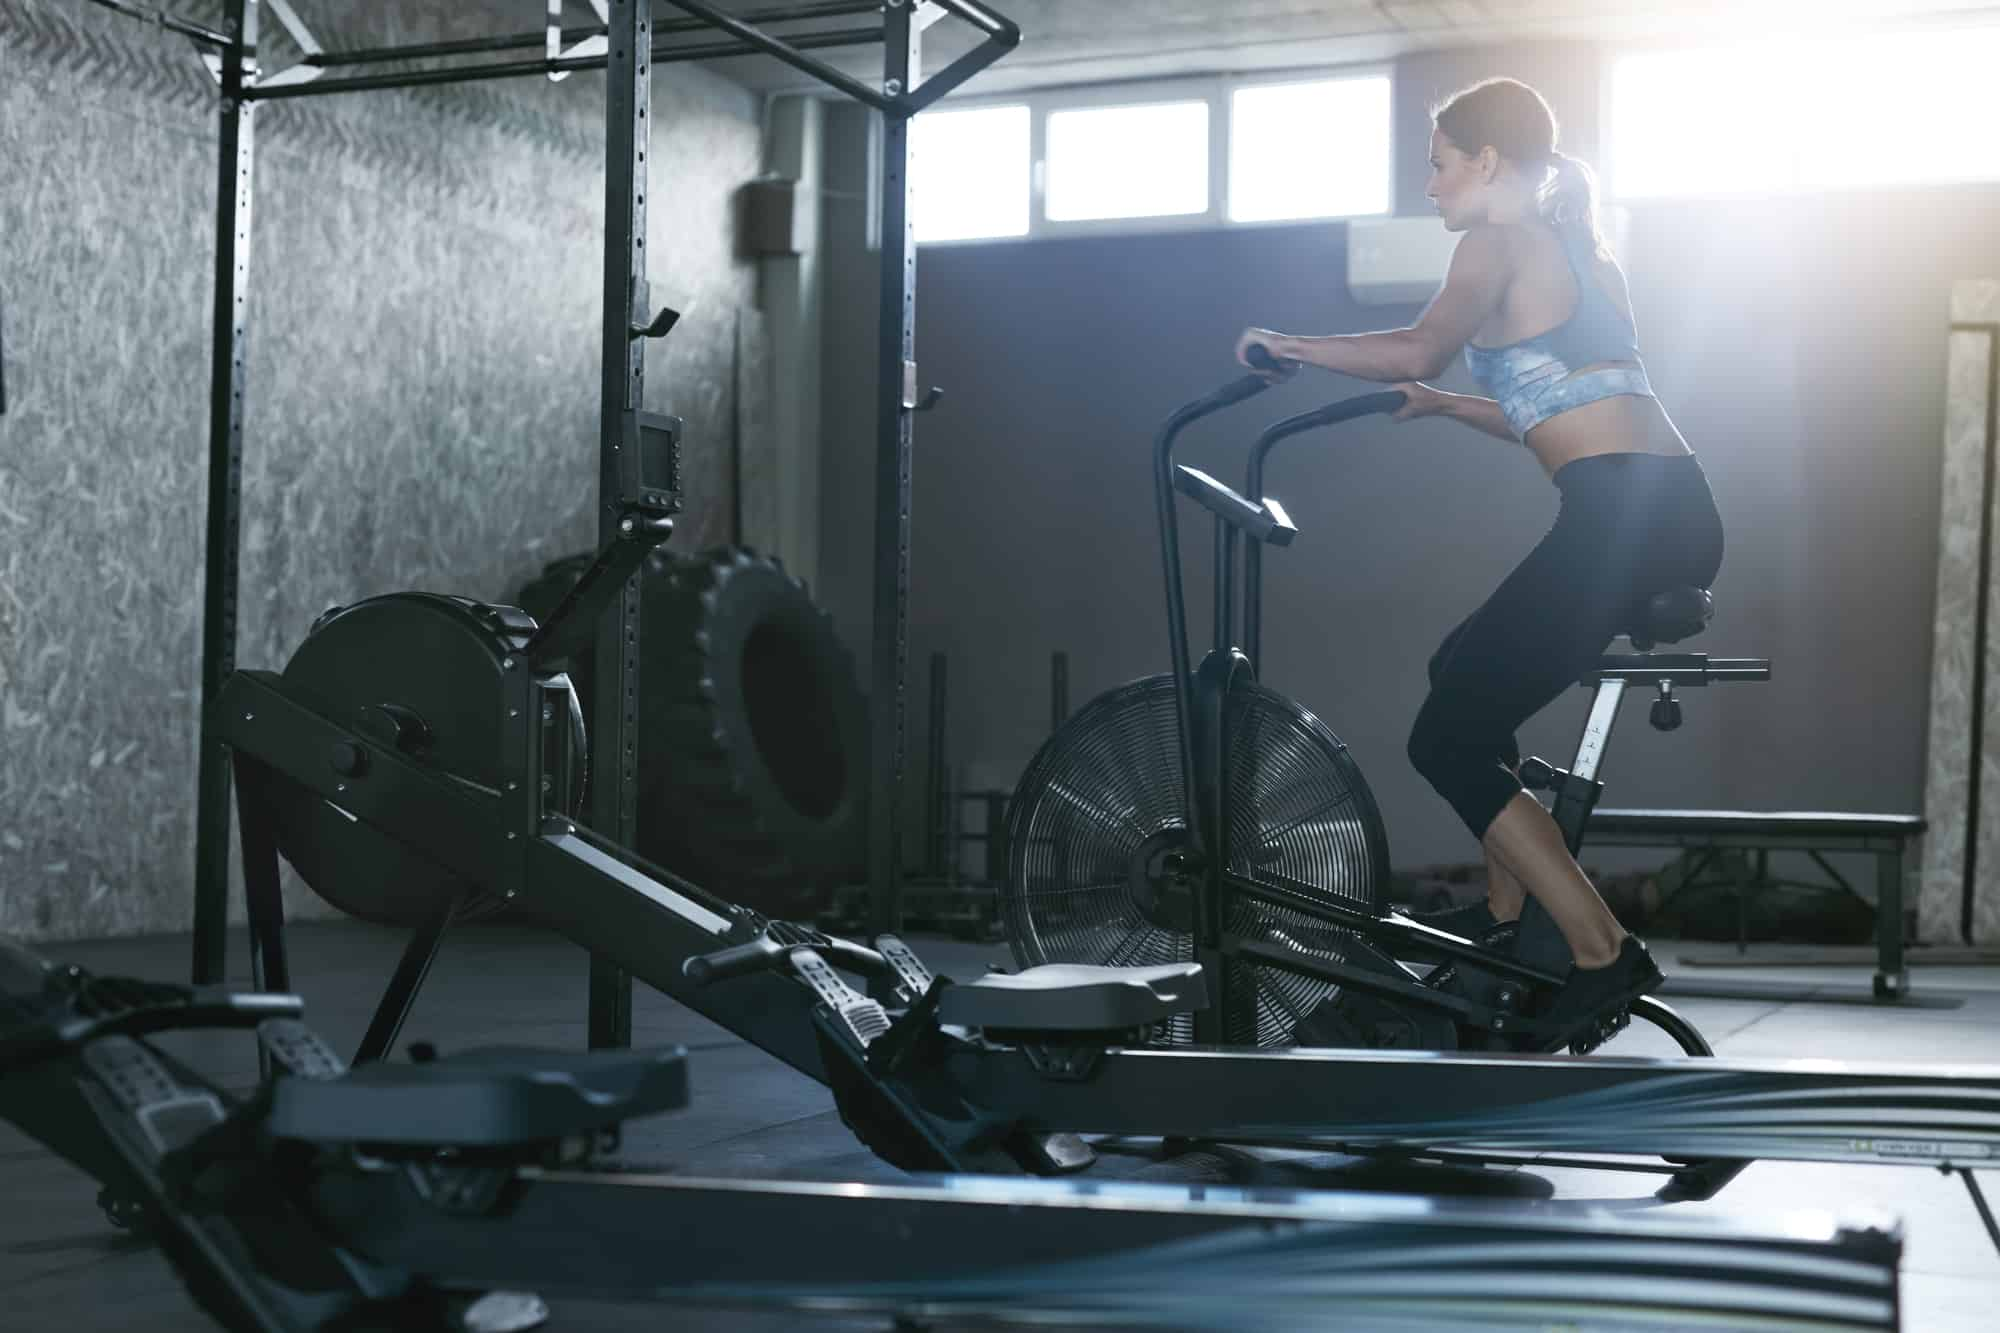 lady at gym working out on an assault bike crossfit